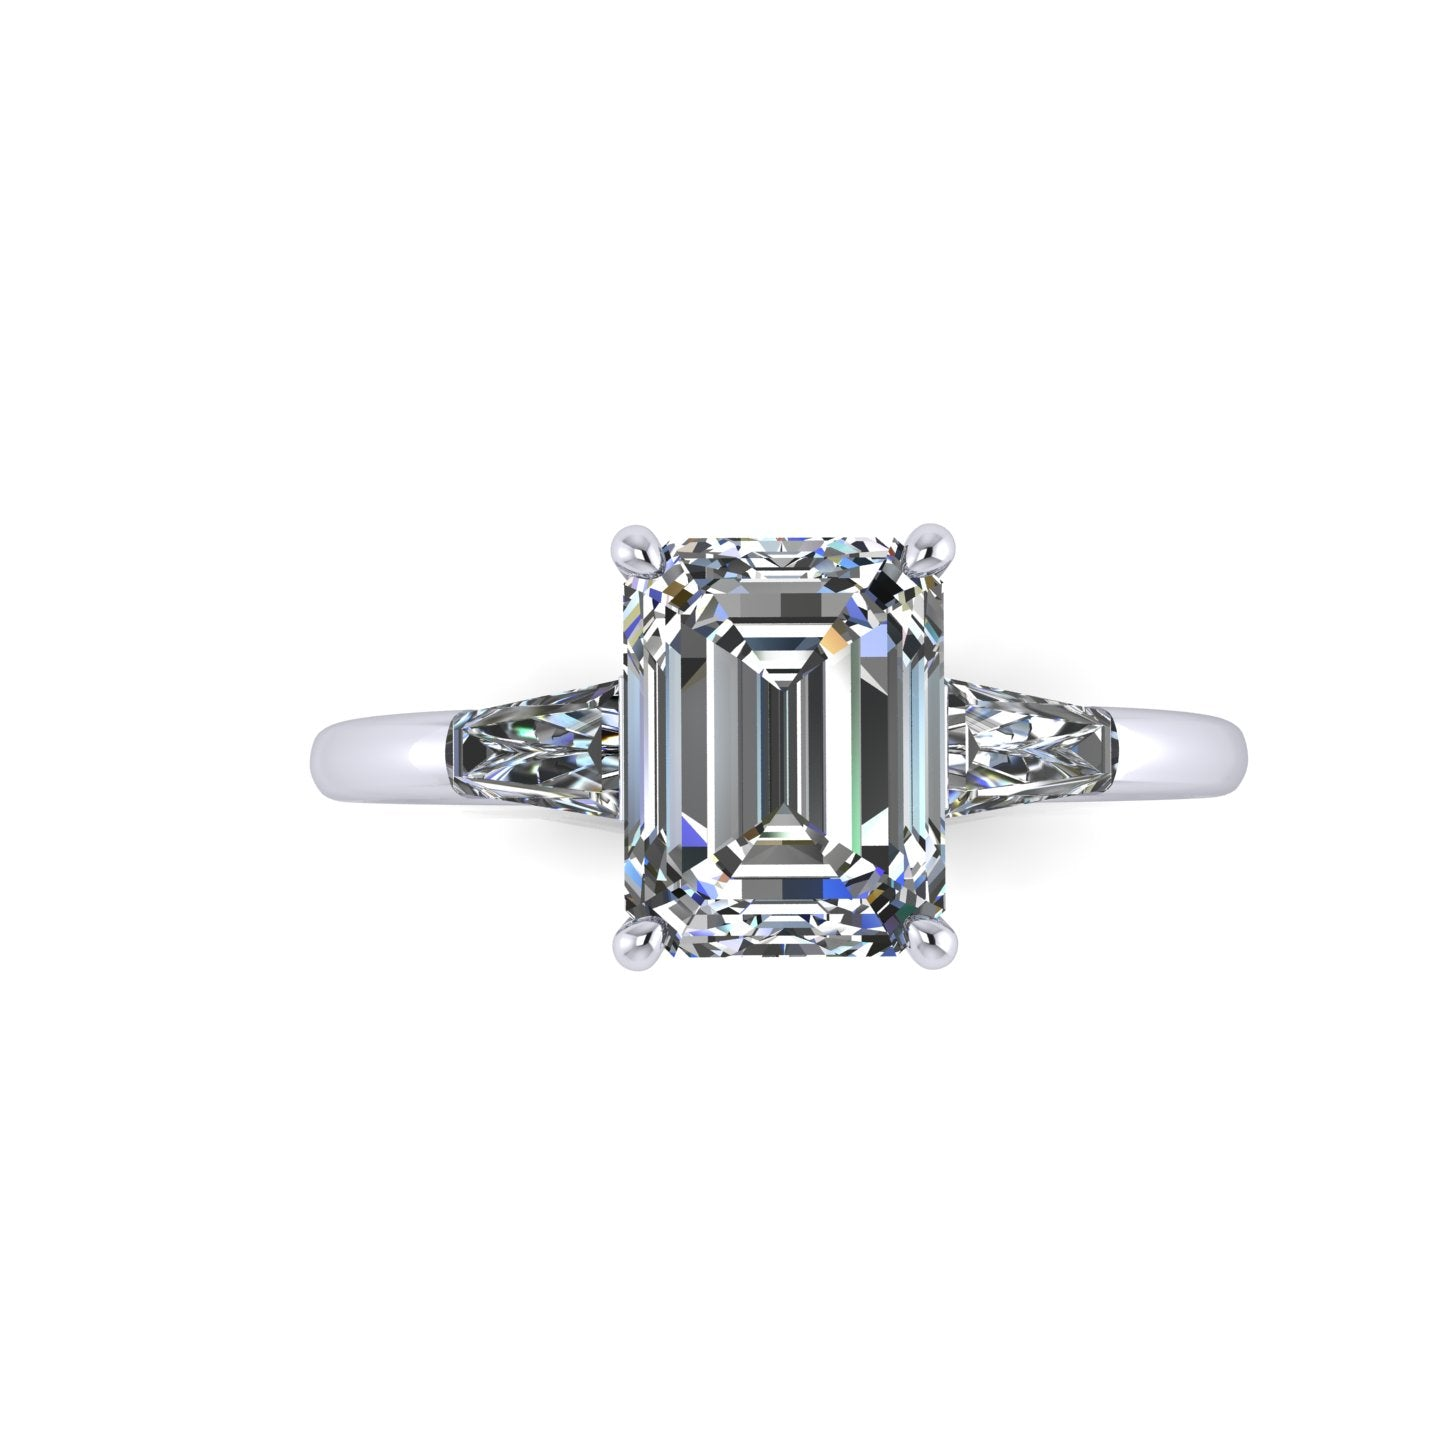 SIGNATURE EMERALD CUT with TAPERED BAGUETTES ENGAGEMENT RING